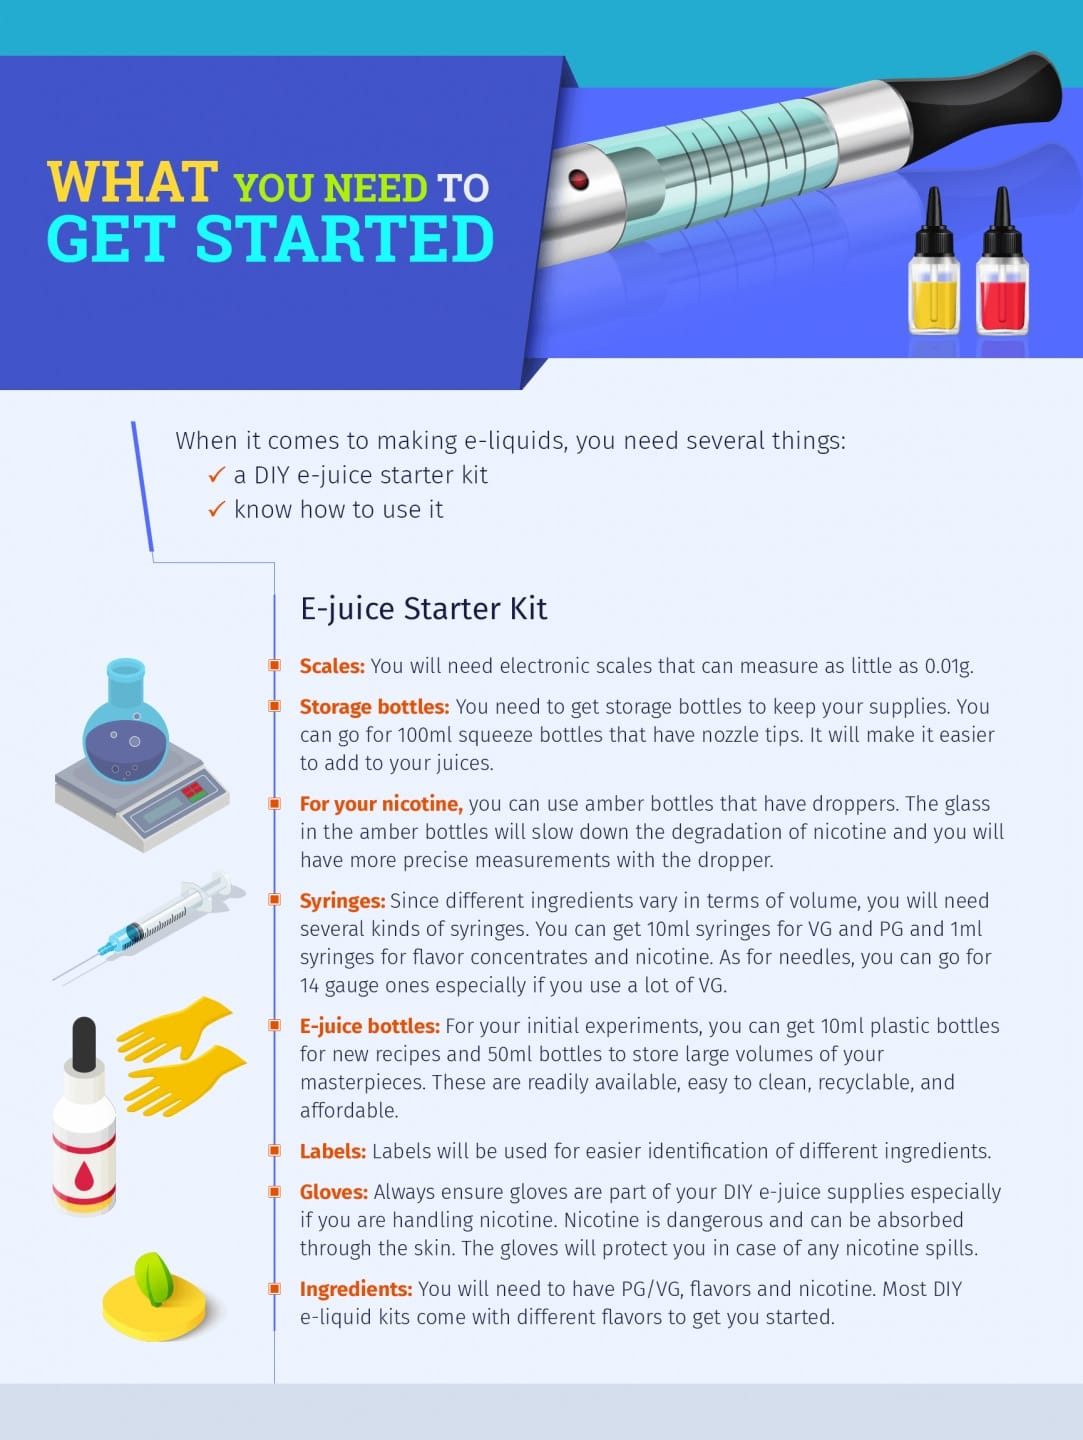 Best DIY E-juice Kits and Suppliers of 2019 : Become Your Own Master